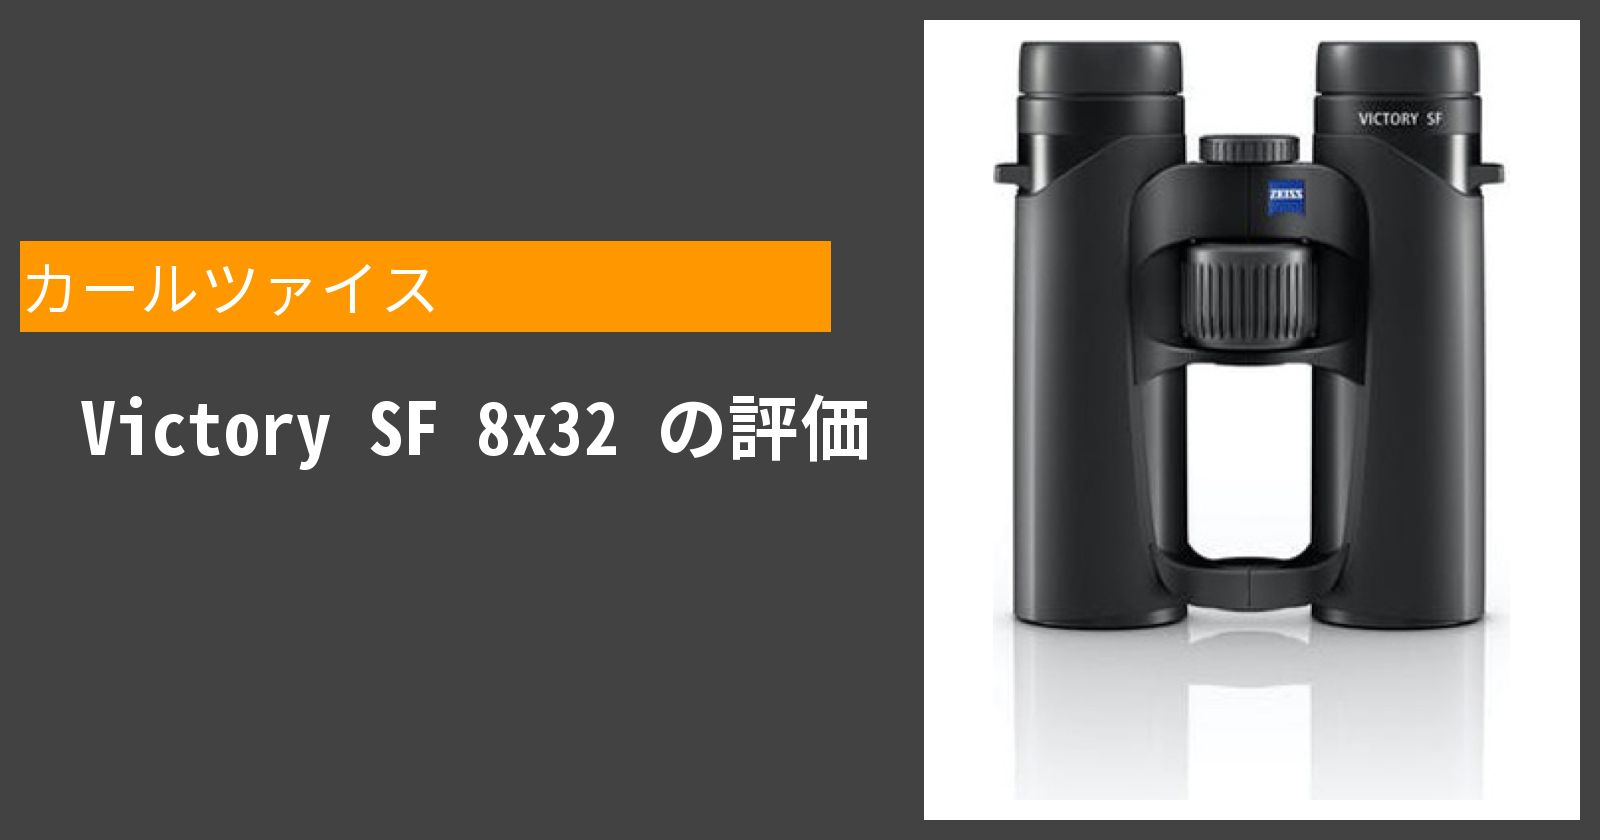 Victory SF 8x32を徹底評価